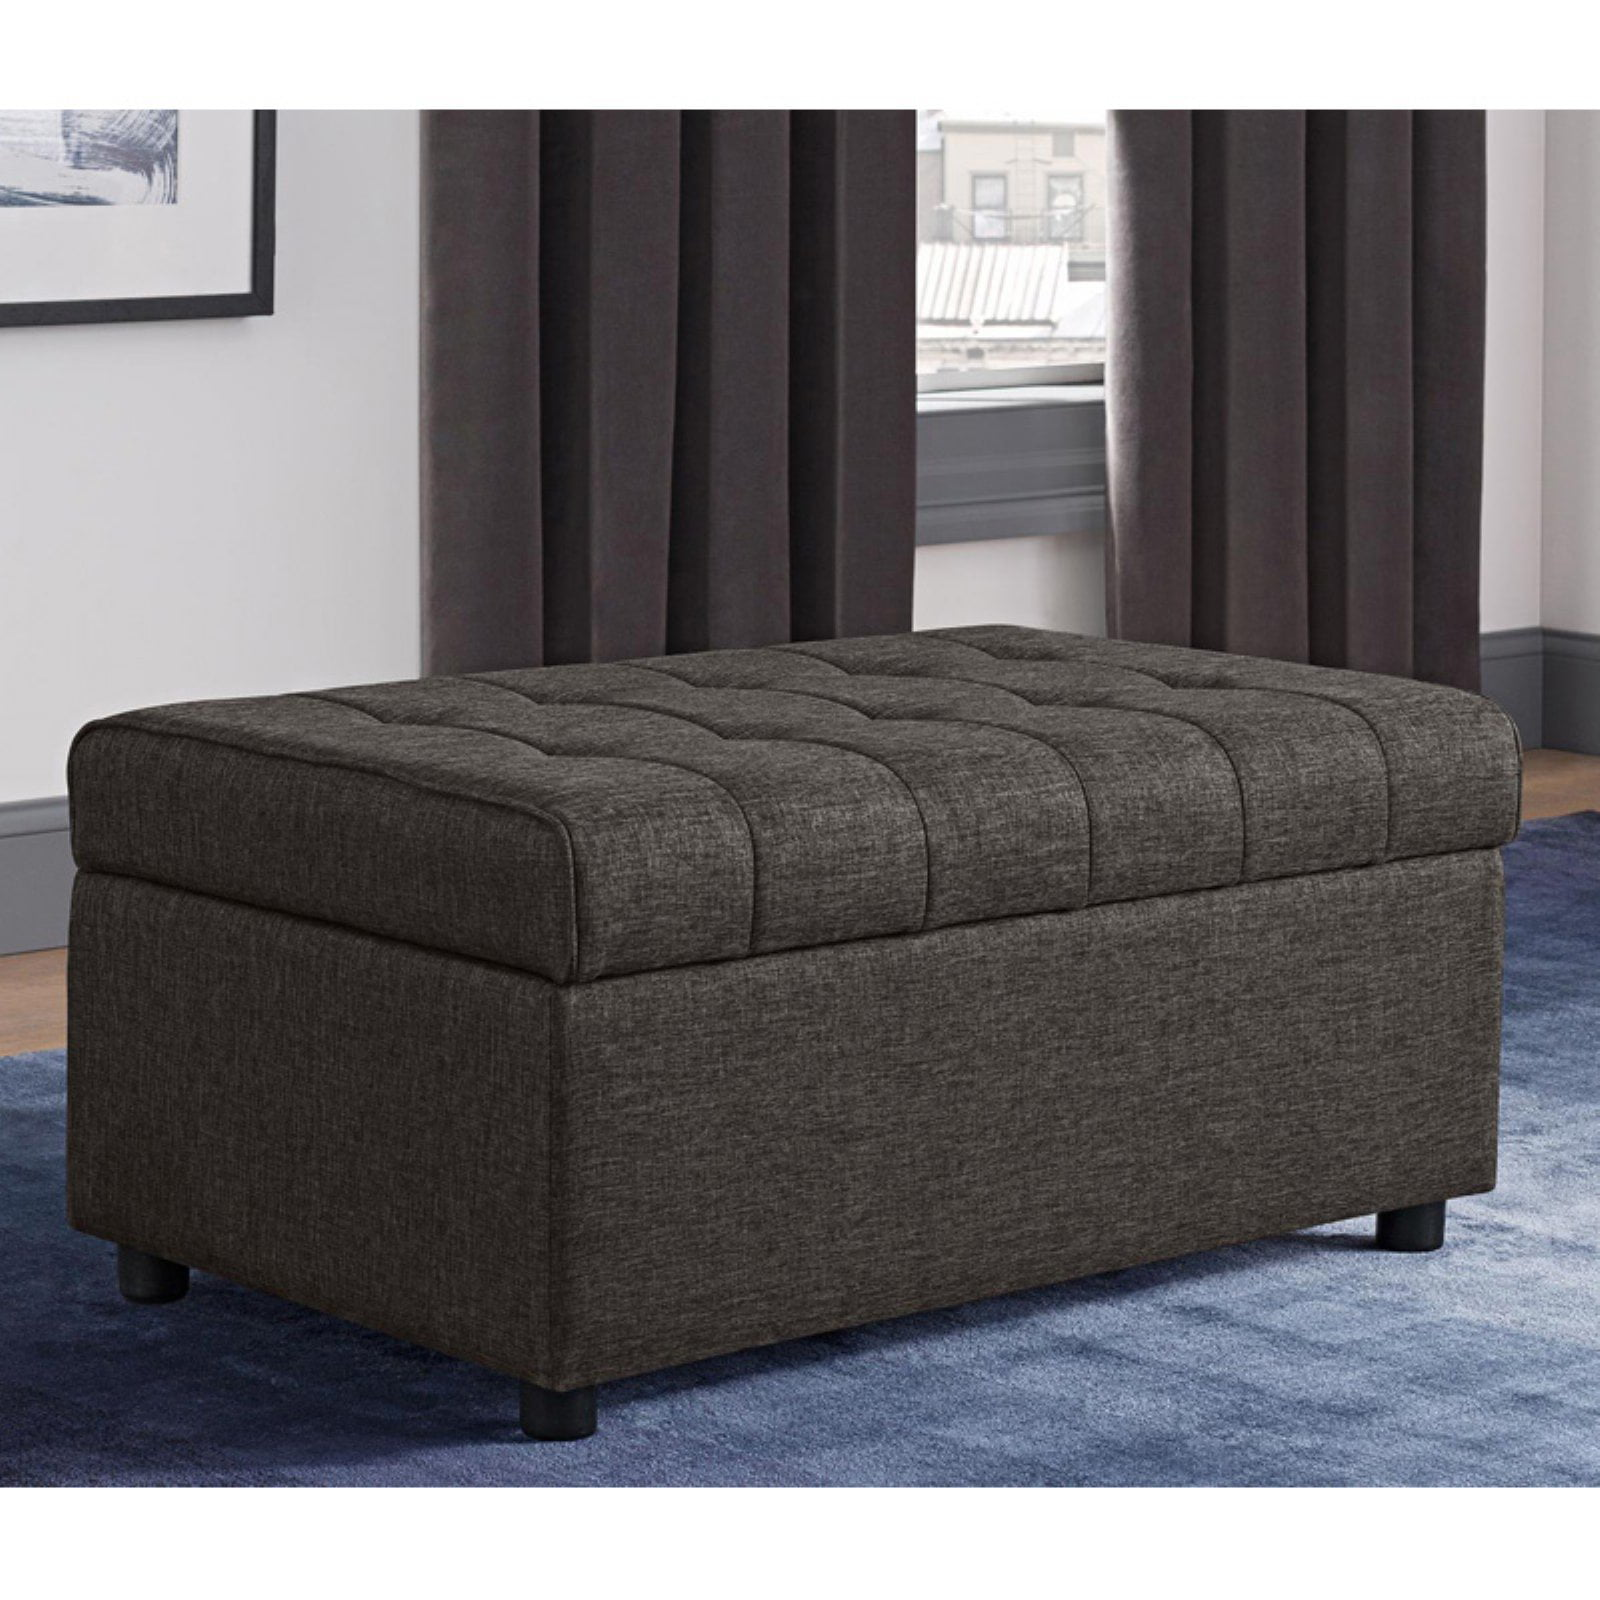 DHP Emily Rectangular Storage Ottoman, Multiple Colors by Dorel Home Products